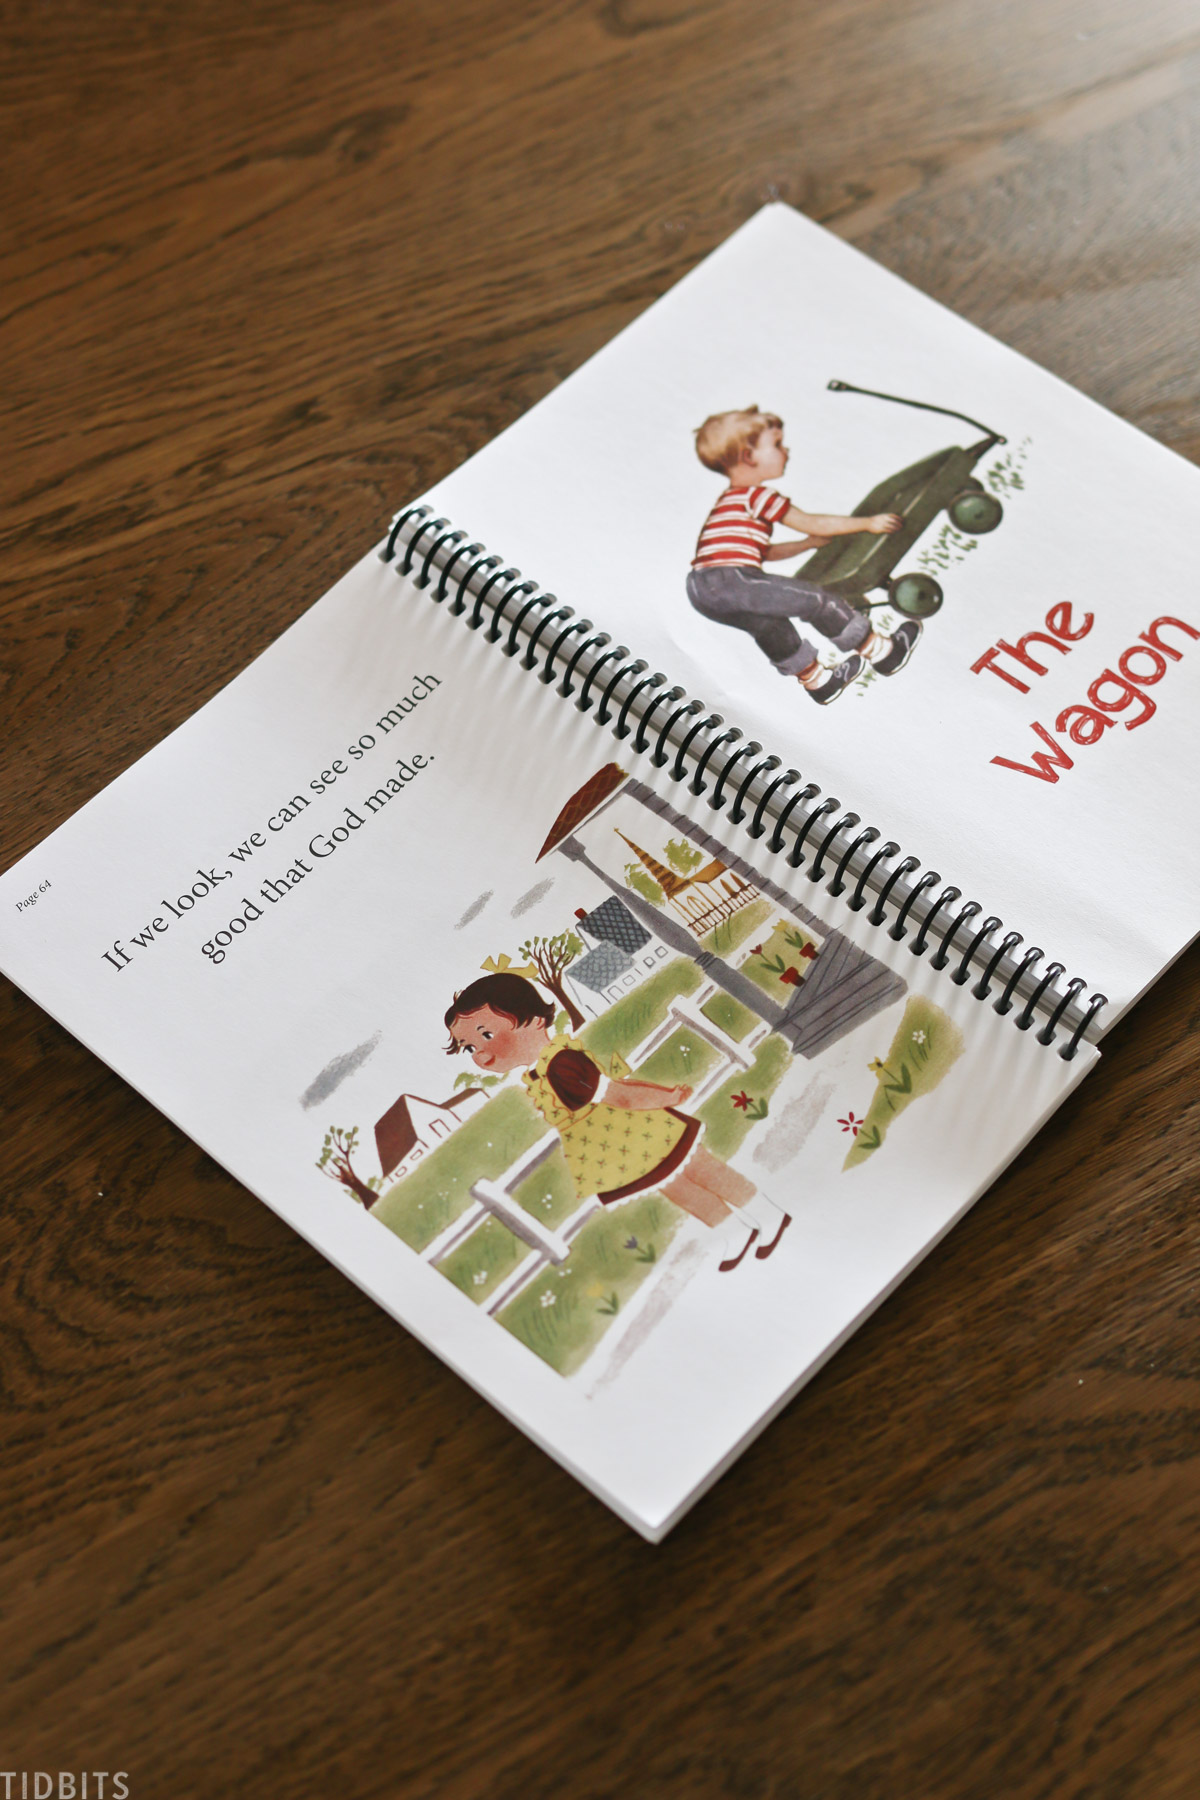 """storybook for homeschooling with story titled """"The Wagon"""""""